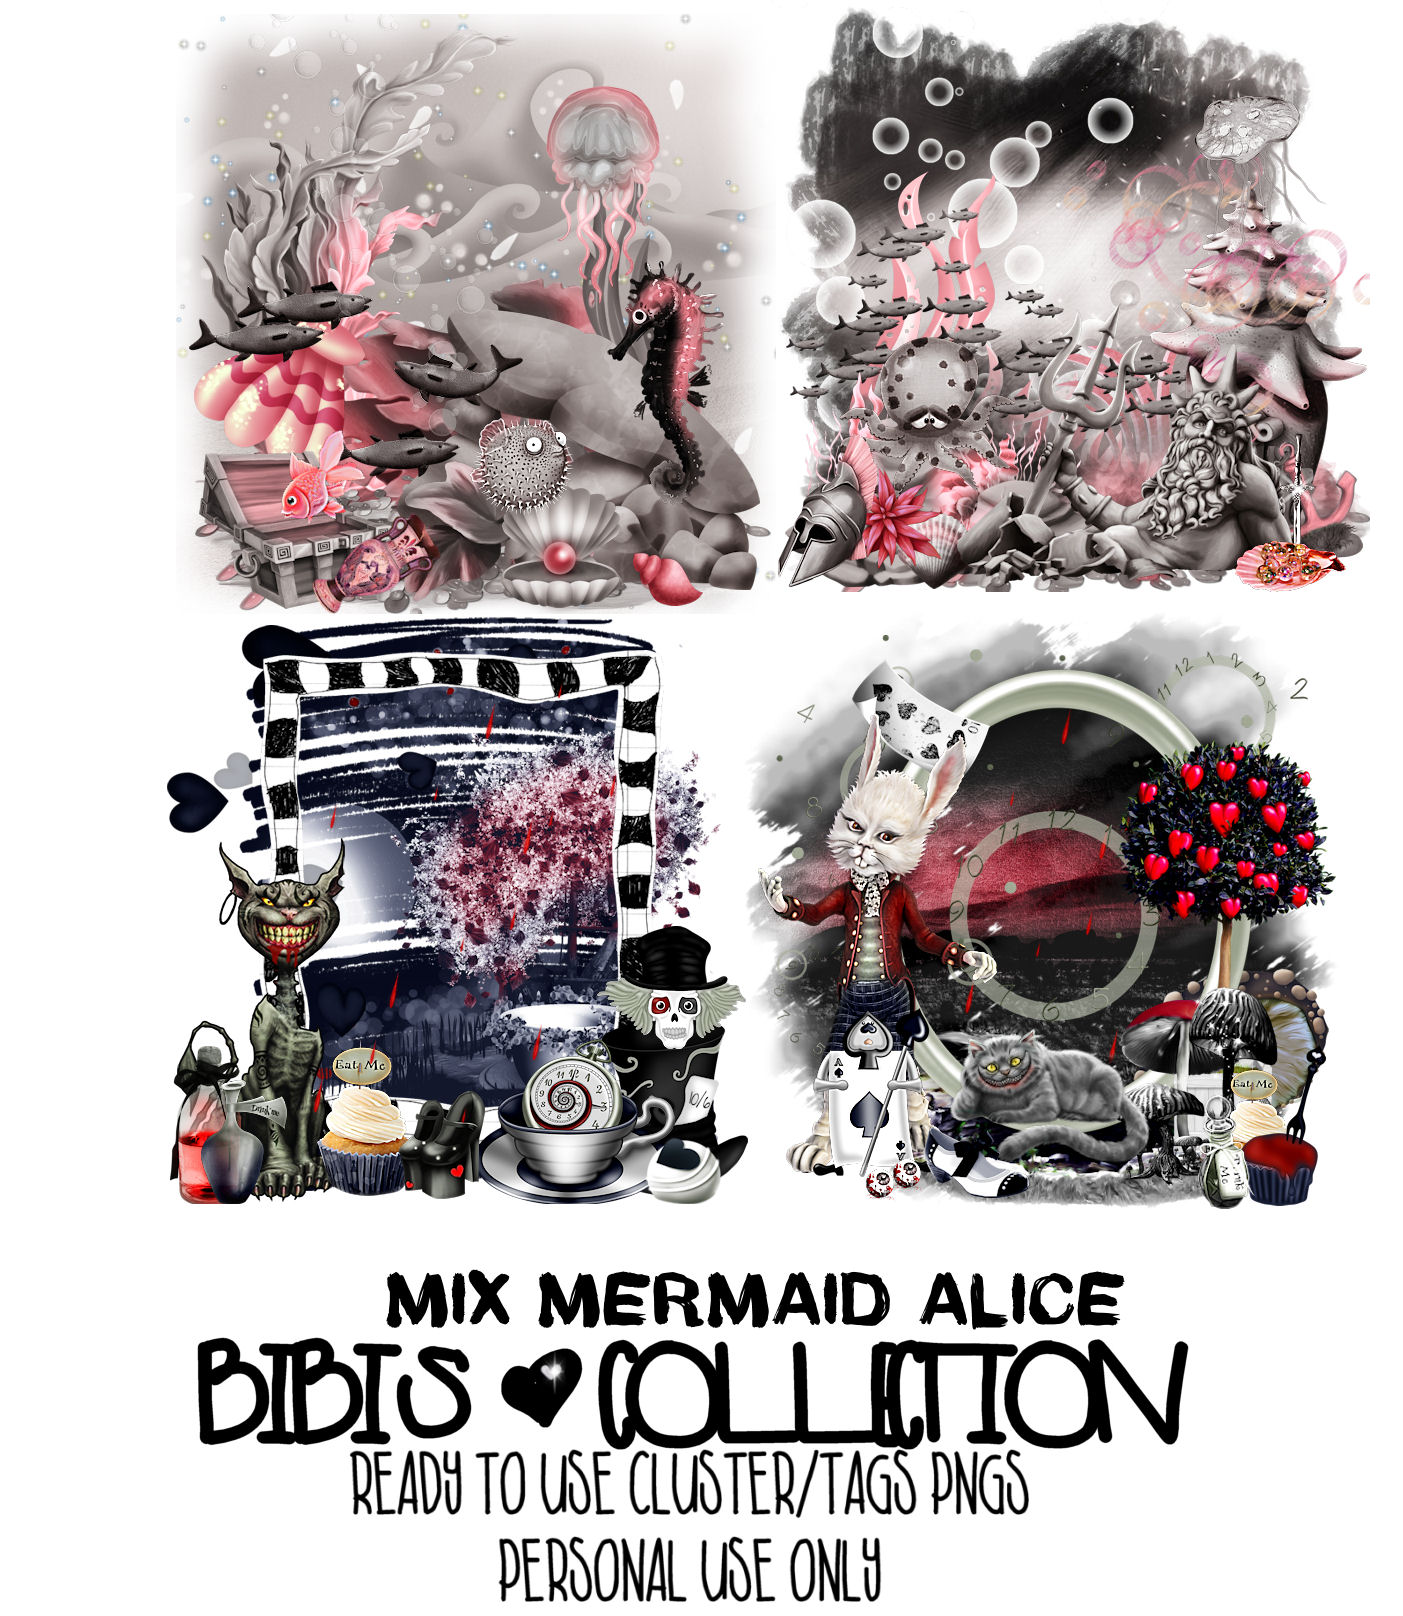 MIX MERMAID ALICE READY CLUSTER TAGS PNG